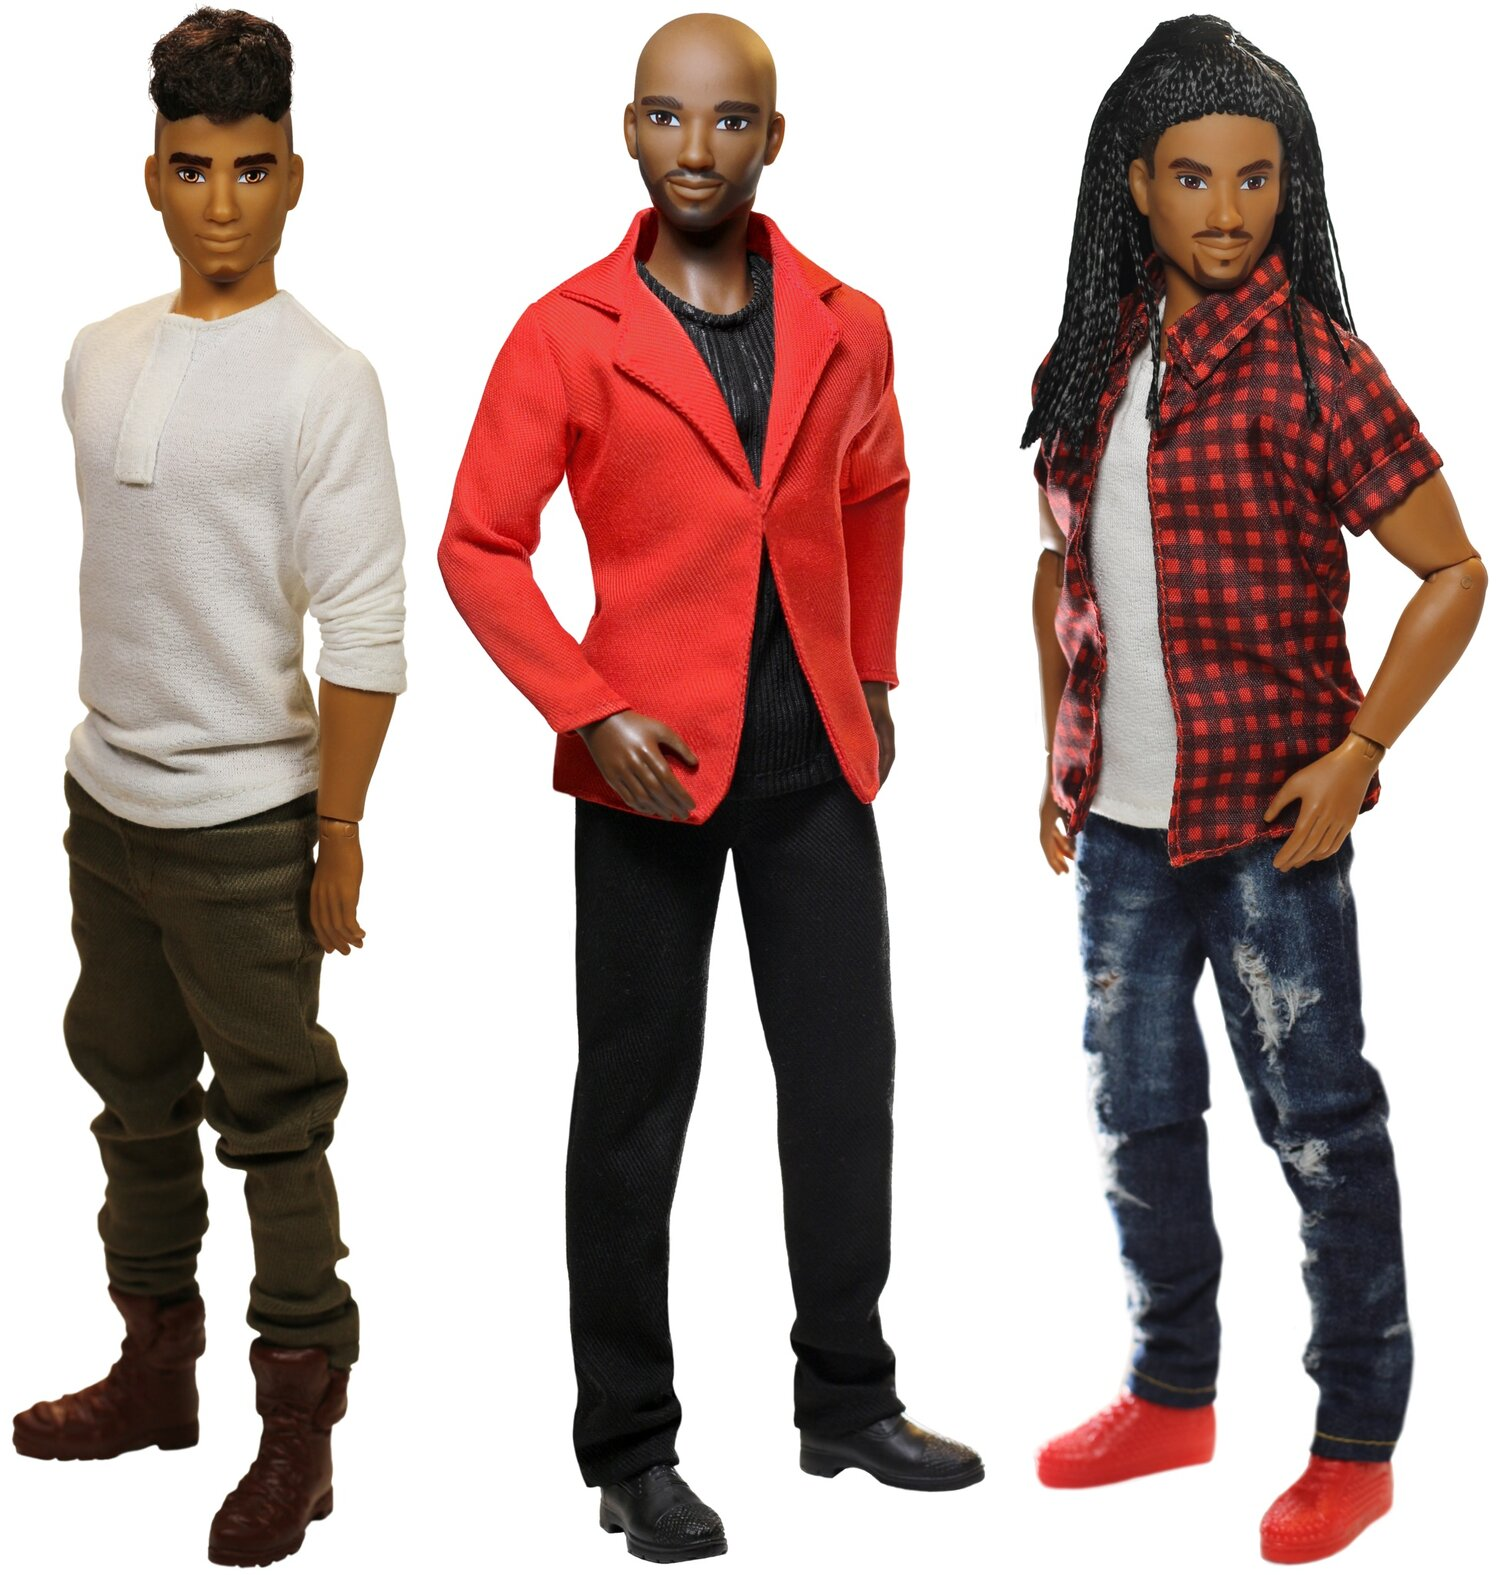 """Three male-coded dolls. The doll to the left has caramel skin, curly brown hair in an undercut, and a goatee. They are wearing a white shirt with olive colored pants and brown boots. The middle doll has dark brown skin, a neatly-trimmed beard and is bald. They are wearing a black shirt, red blazer, black pants, and black loafers. The doll to the far right has light brown skin, a trimmed moustache and beard, and their black hair is pulled back into long braids. They are wearing white t-shirt with a red short sleeved plaid shirt over it as well as blue jeans and red sneakers"""".]"""